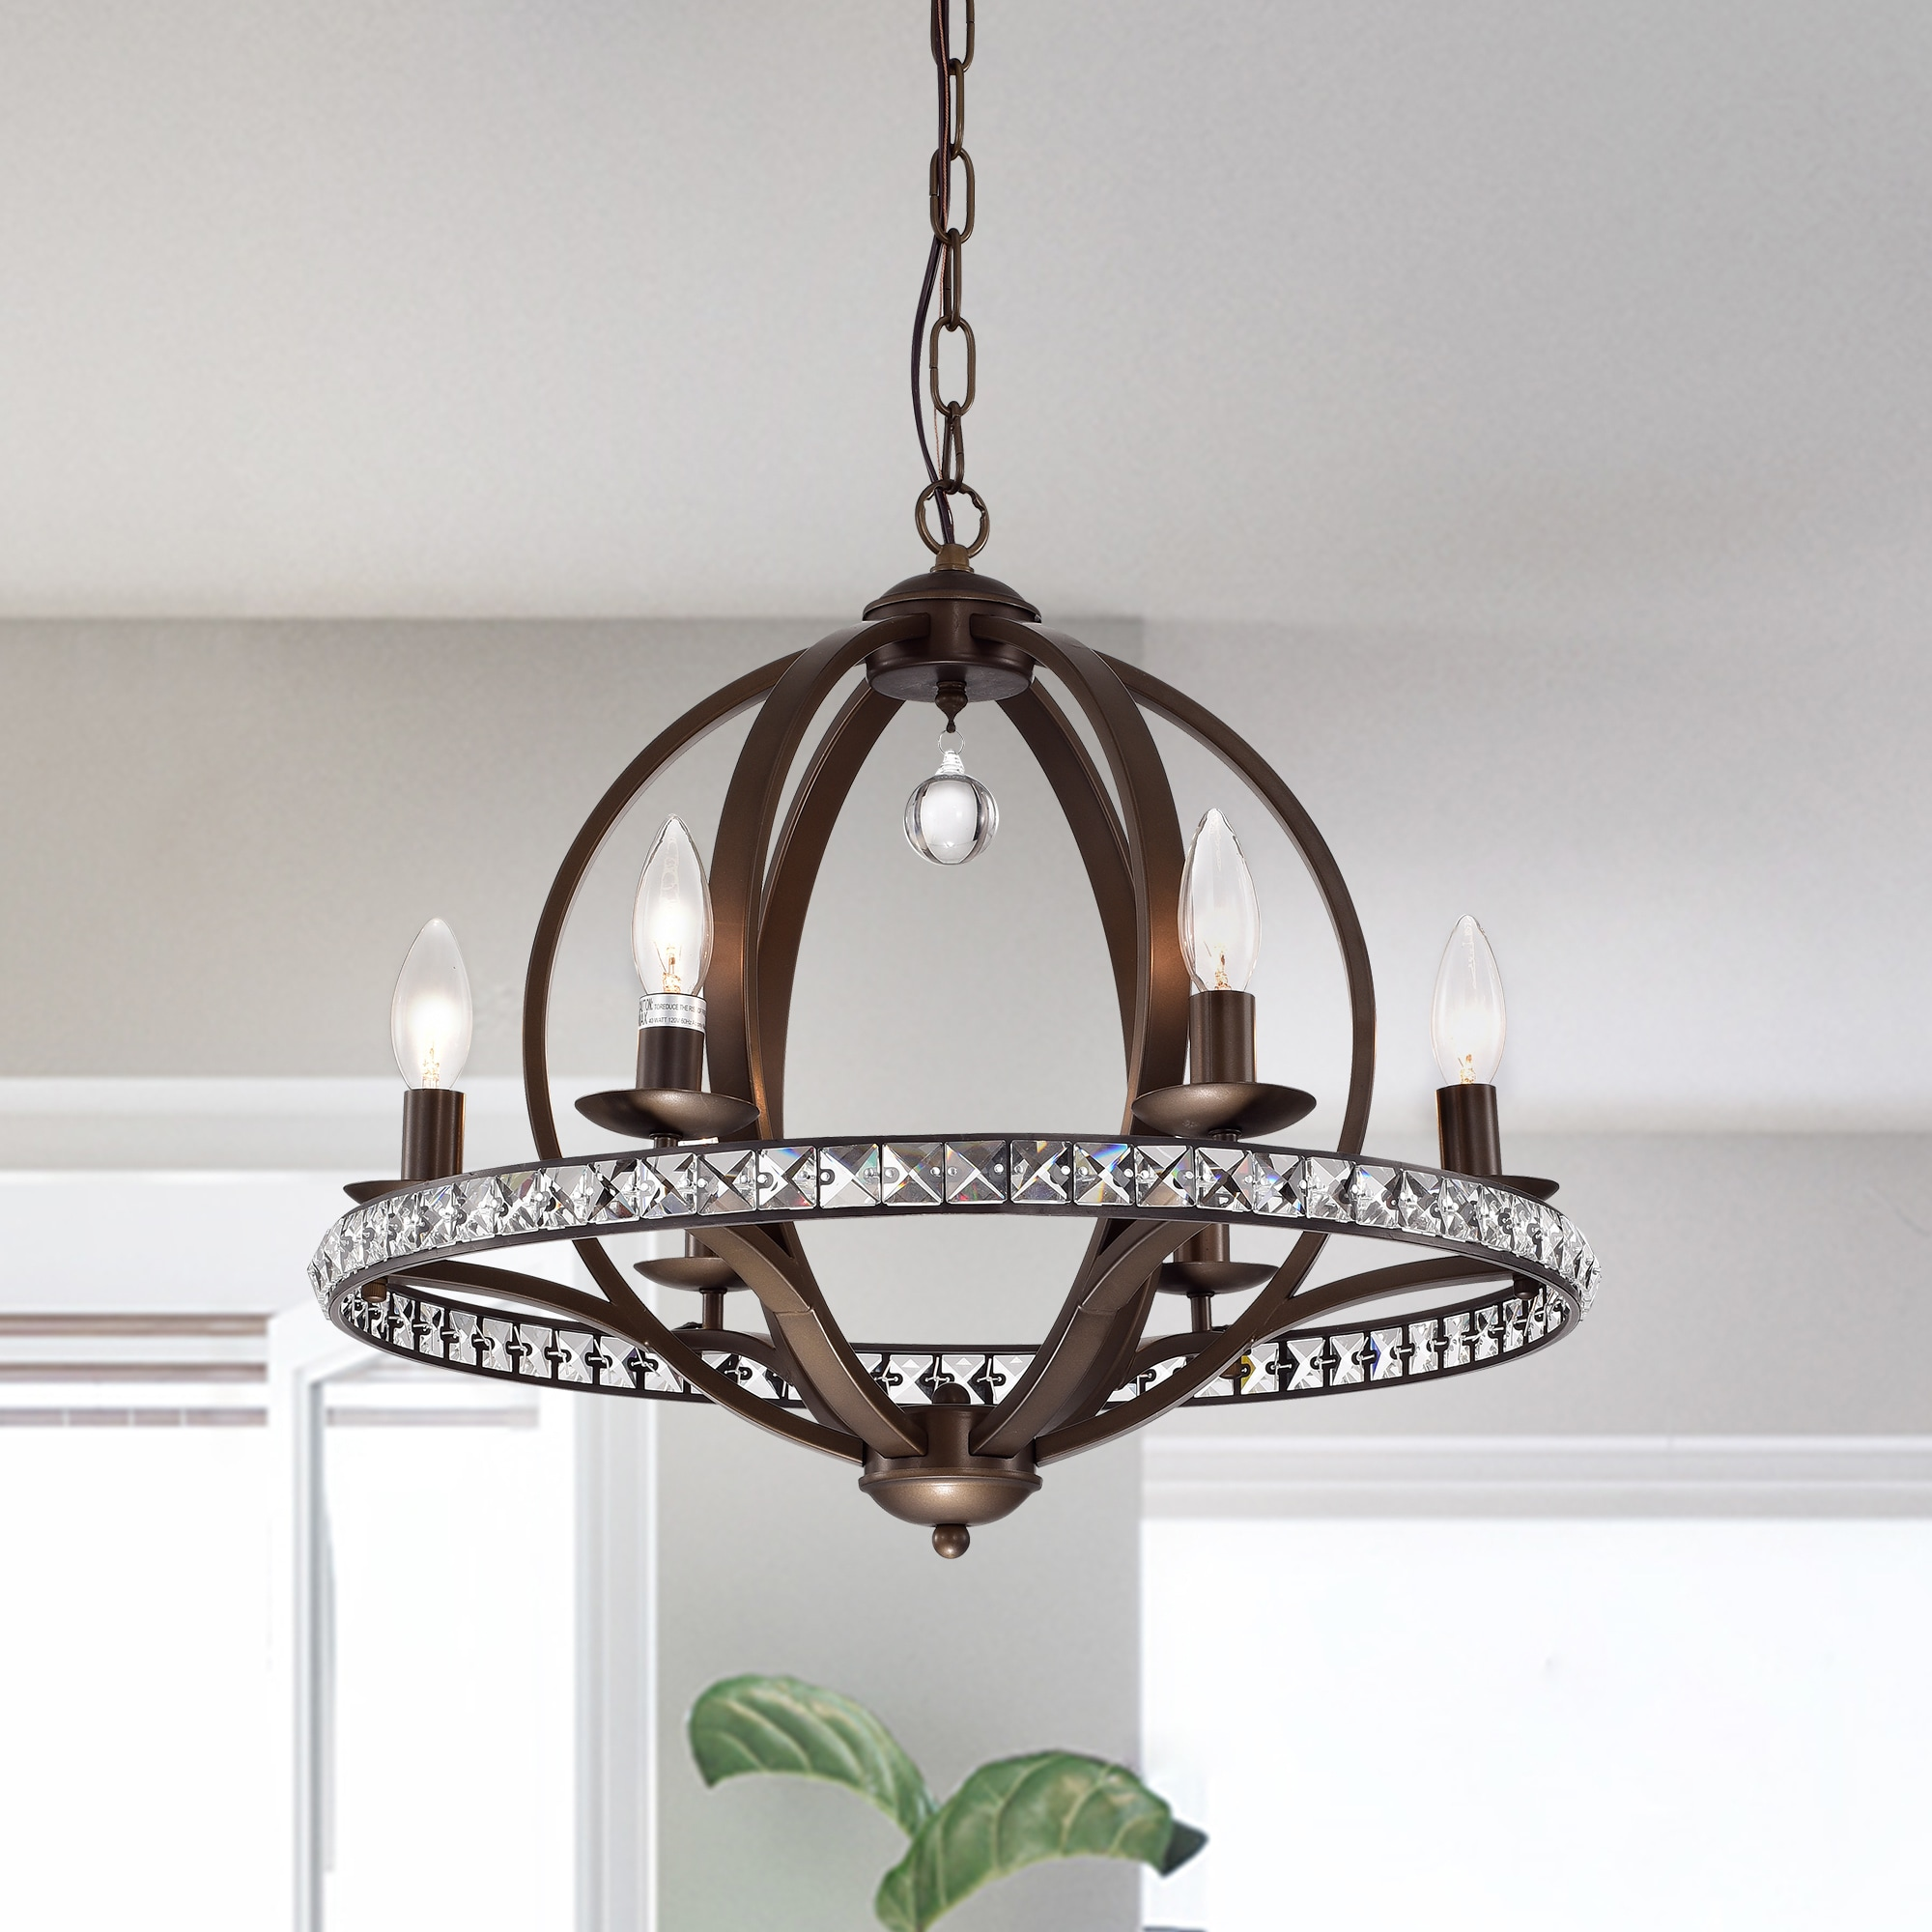 oil lighting acclaim globe n the b loft home lights rubbed with light bronze depot cage metal pendant indoor